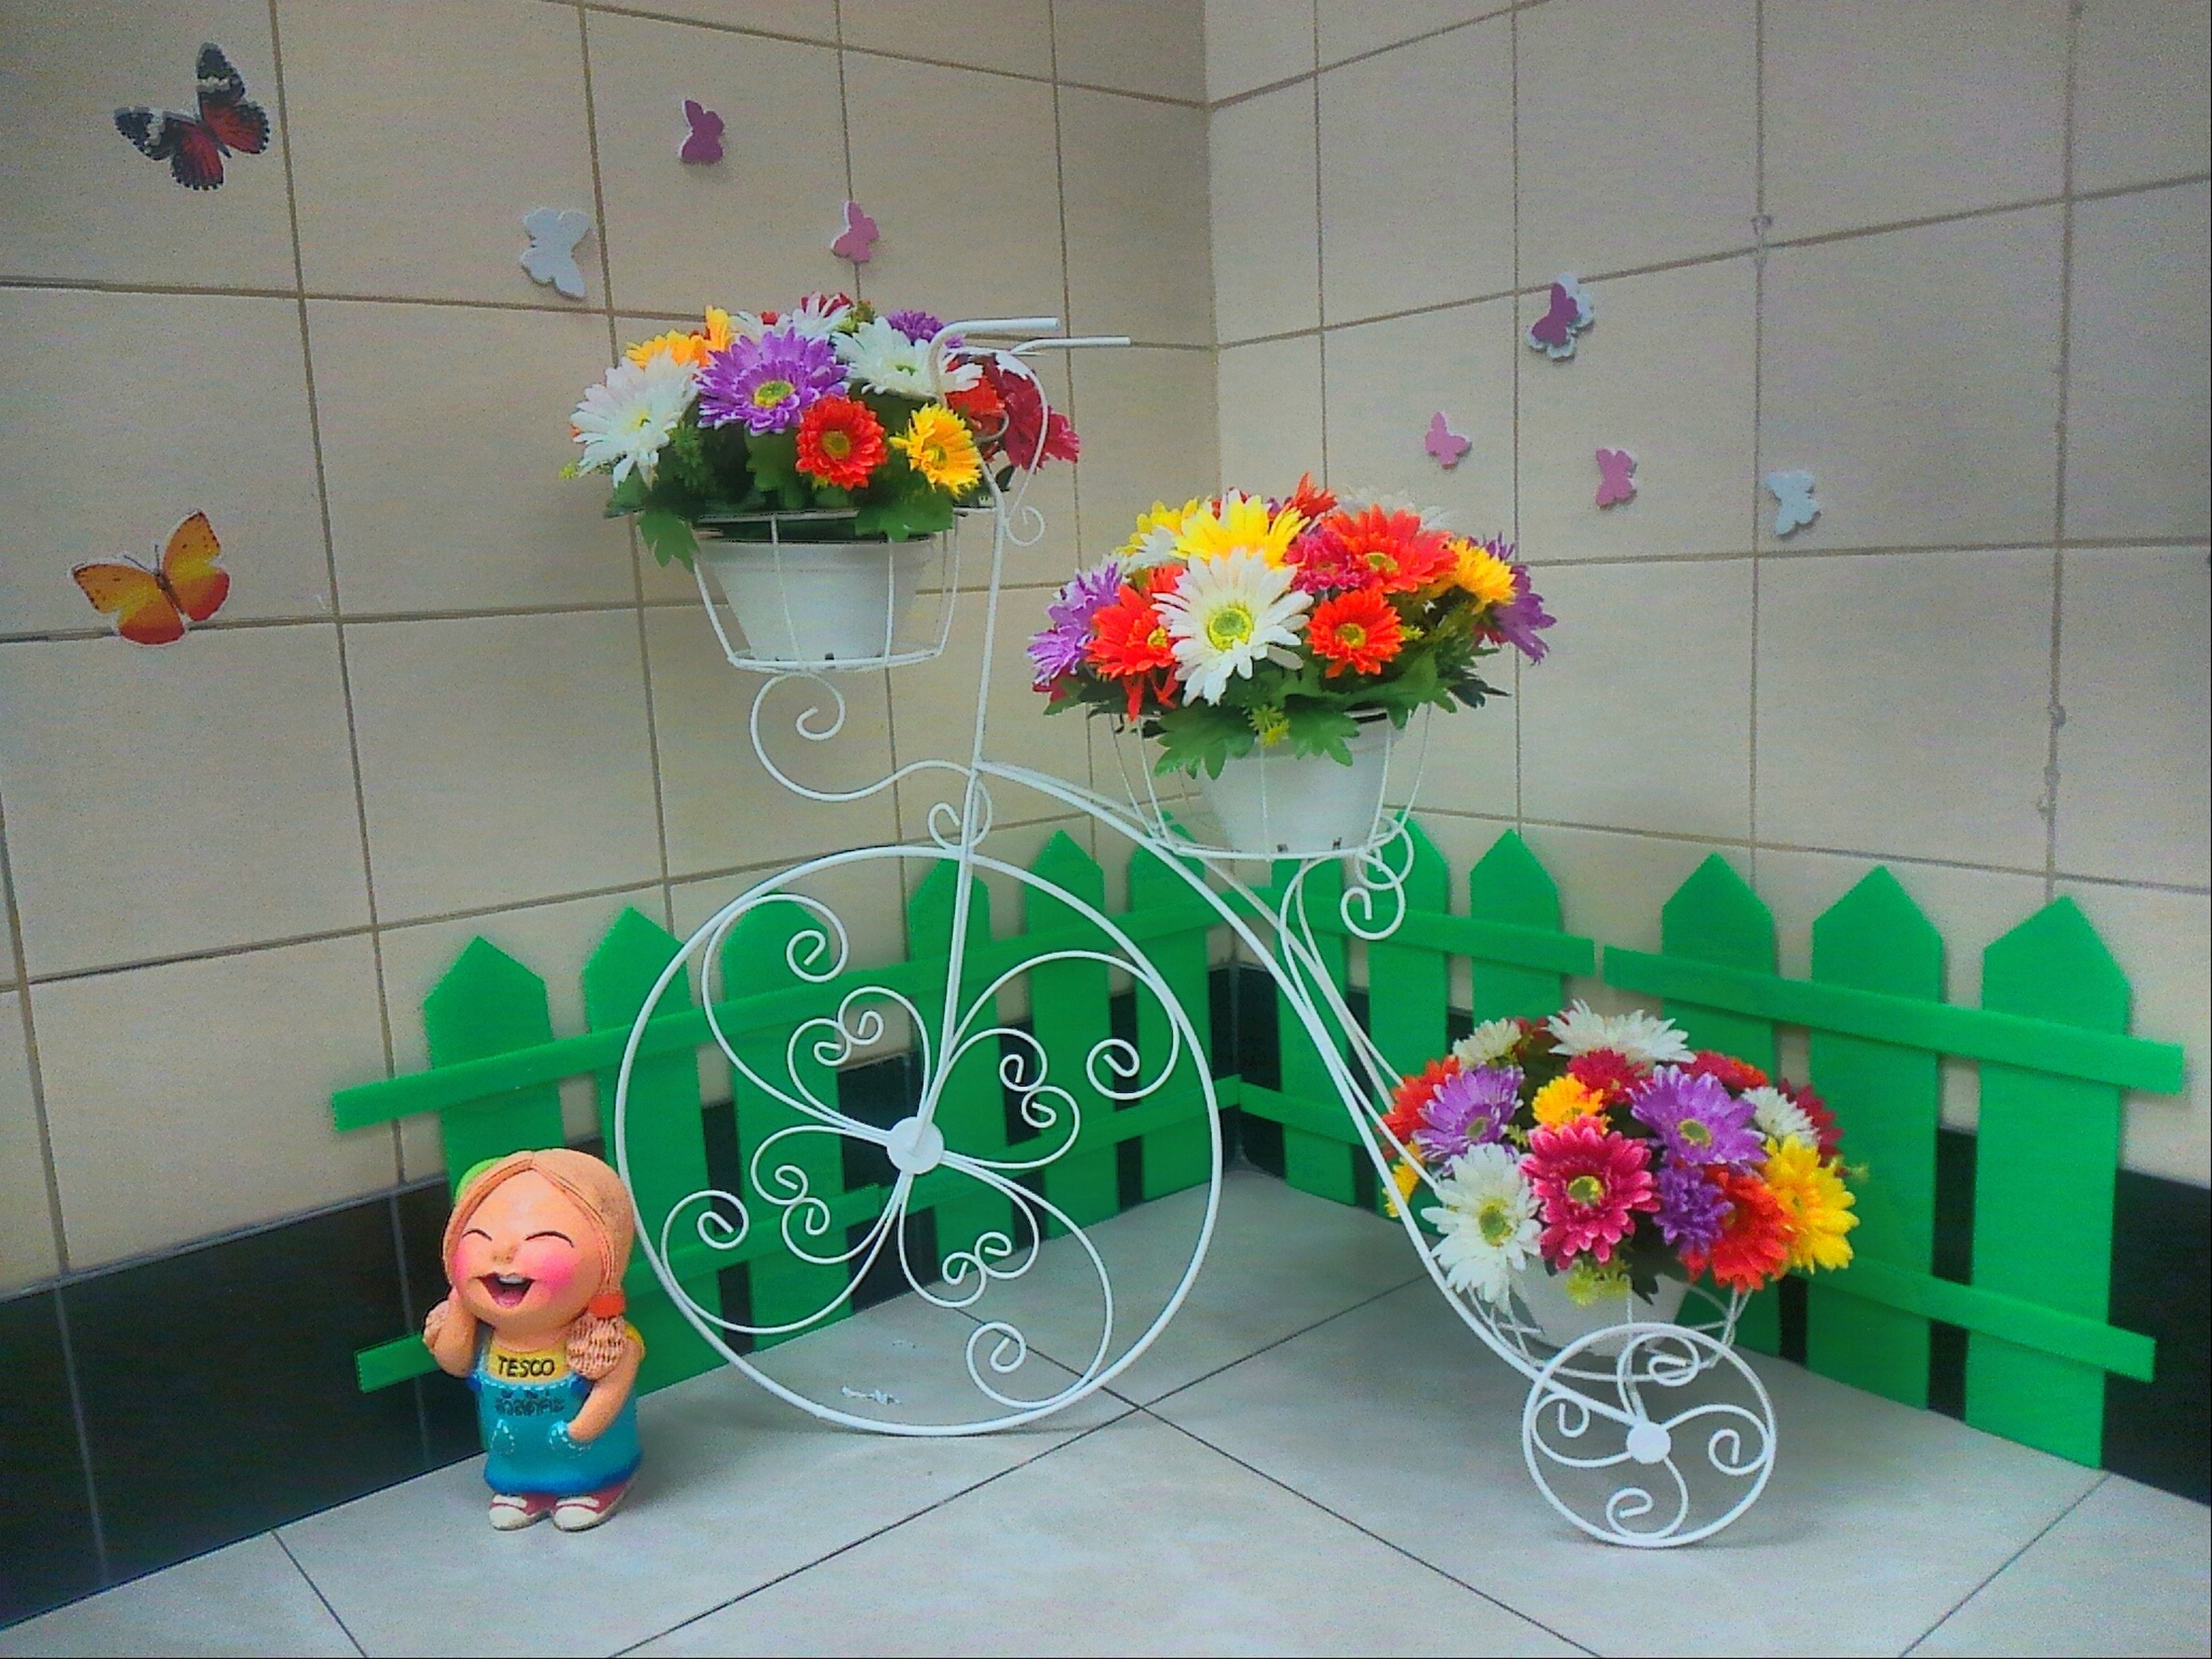 flower, indoors, multi colored, wall - building feature, freshness, fragility, tiled floor, petal, vase, flooring, high angle view, potted plant, pink color, plant, decoration, wall, childhood, tile, flower head, red